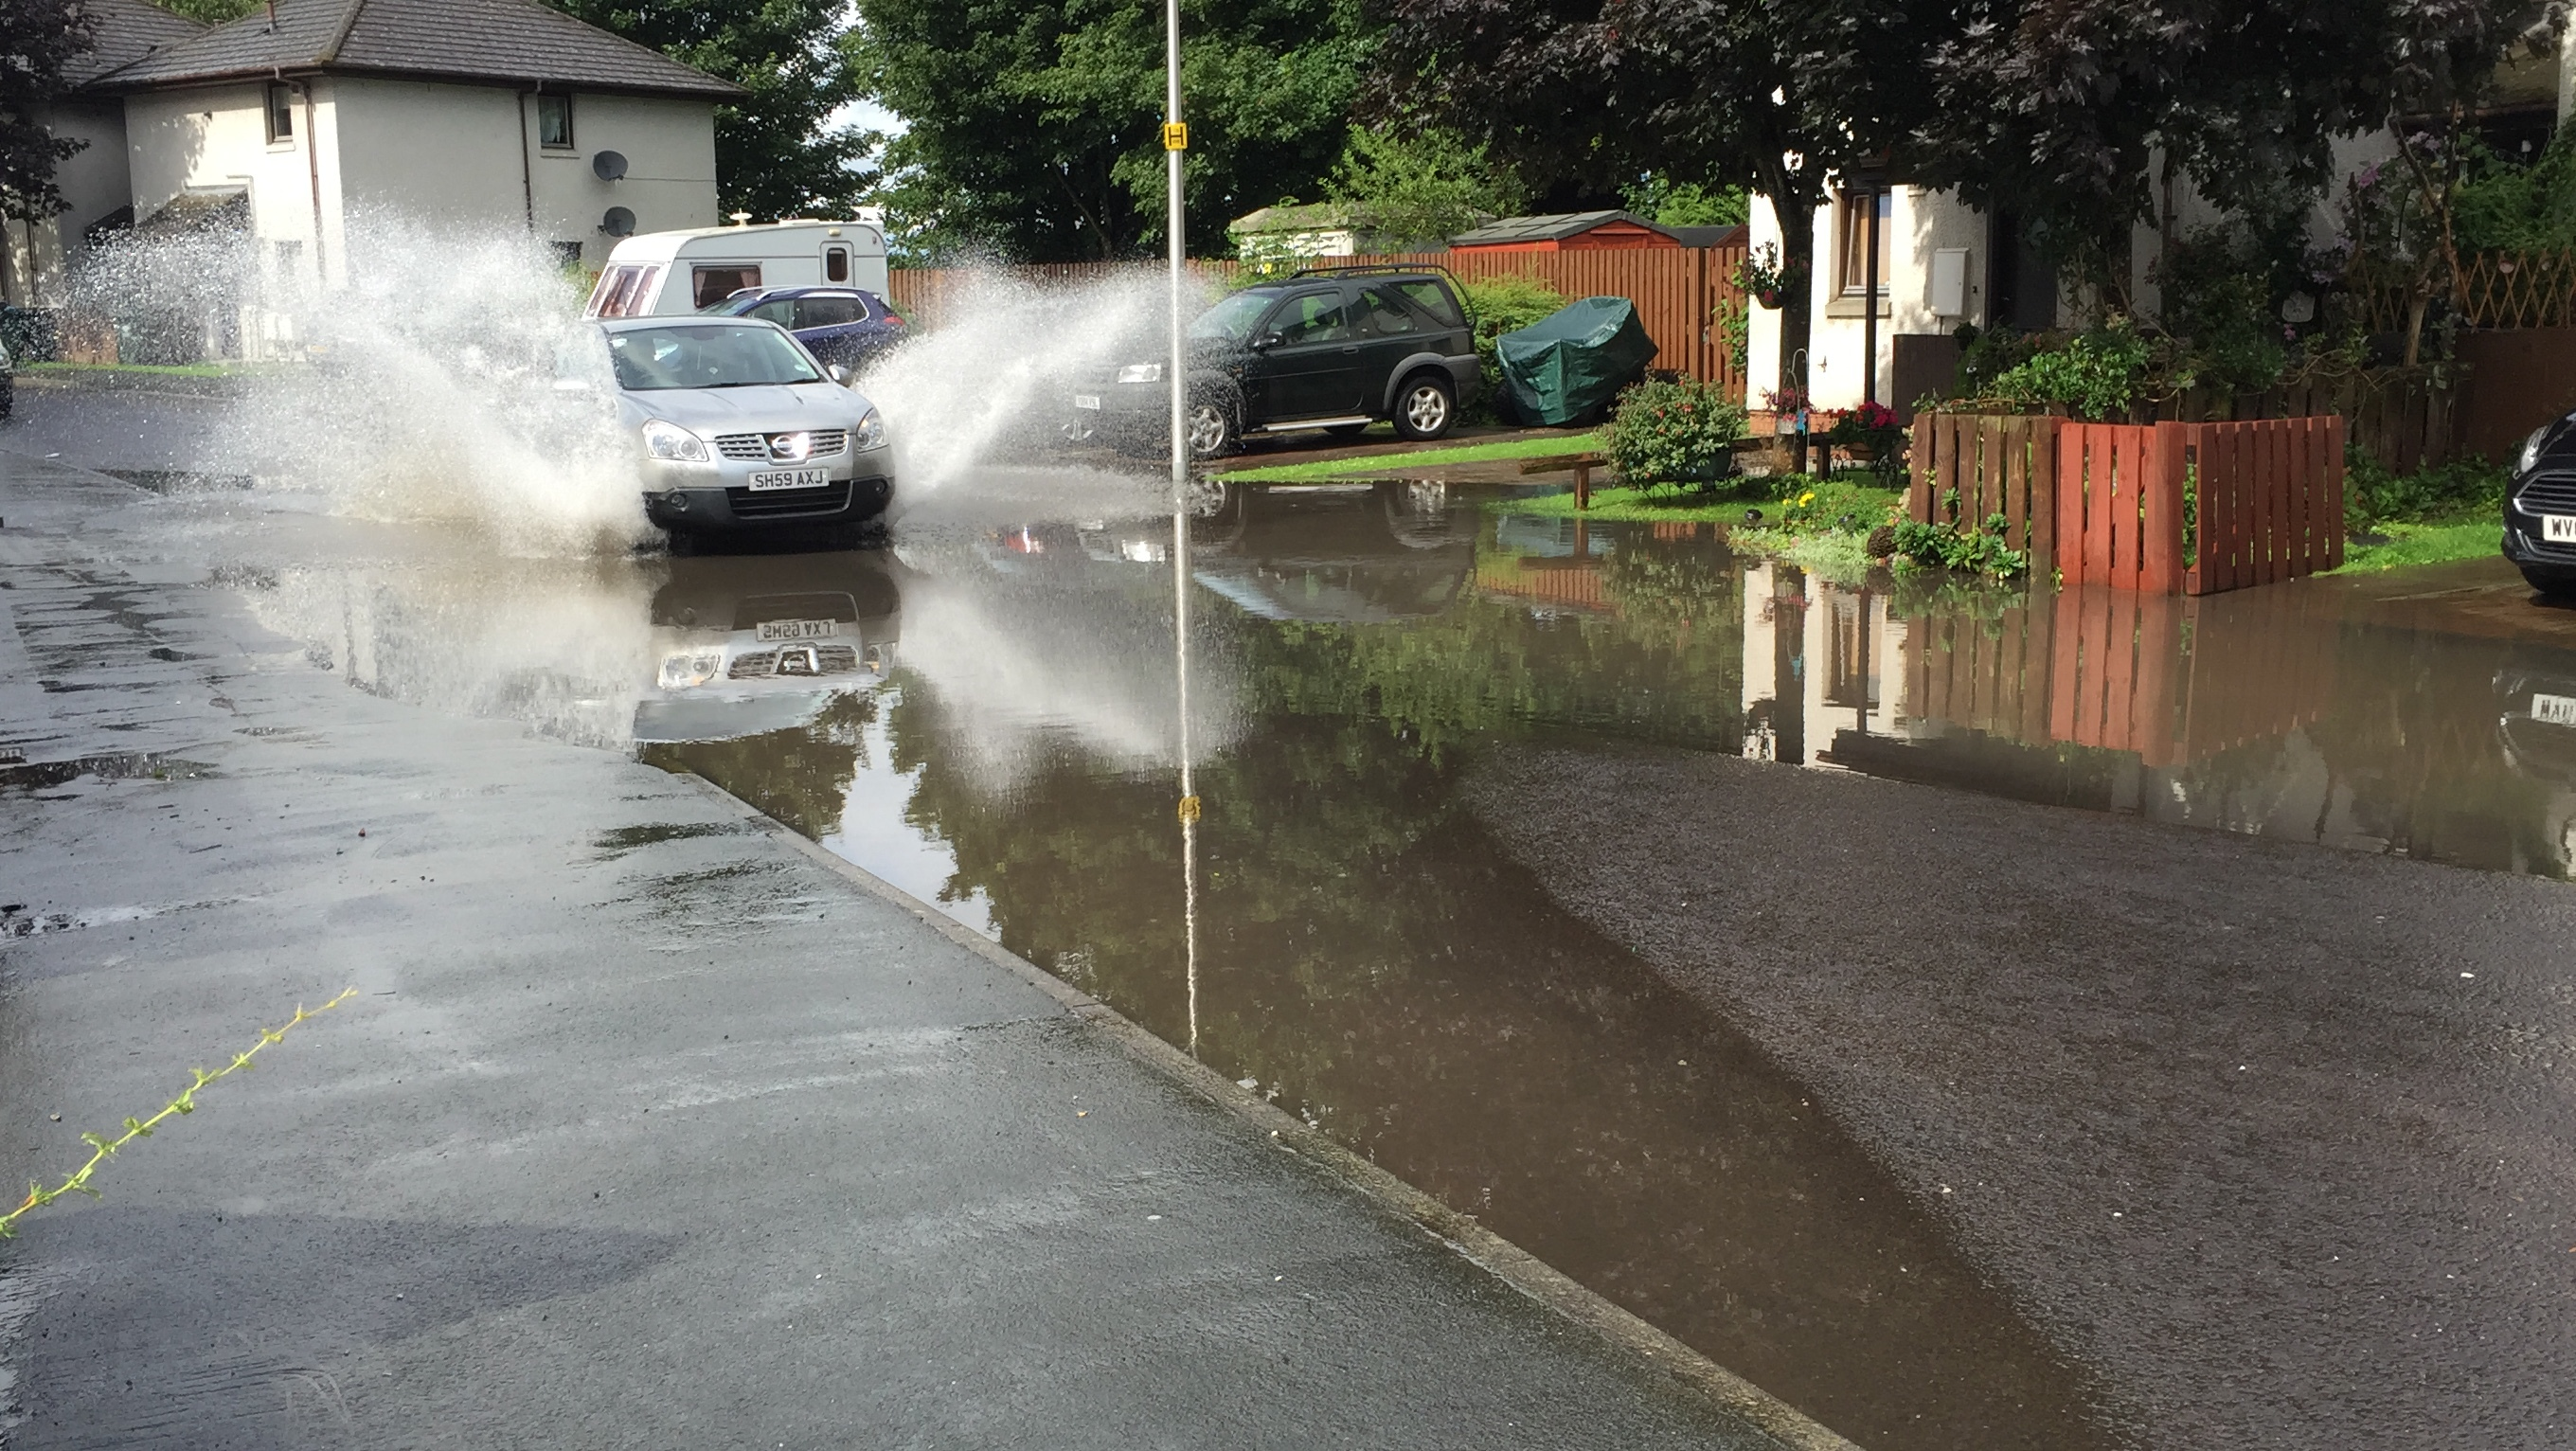 A car drives through the flooding on Cromlix Road.